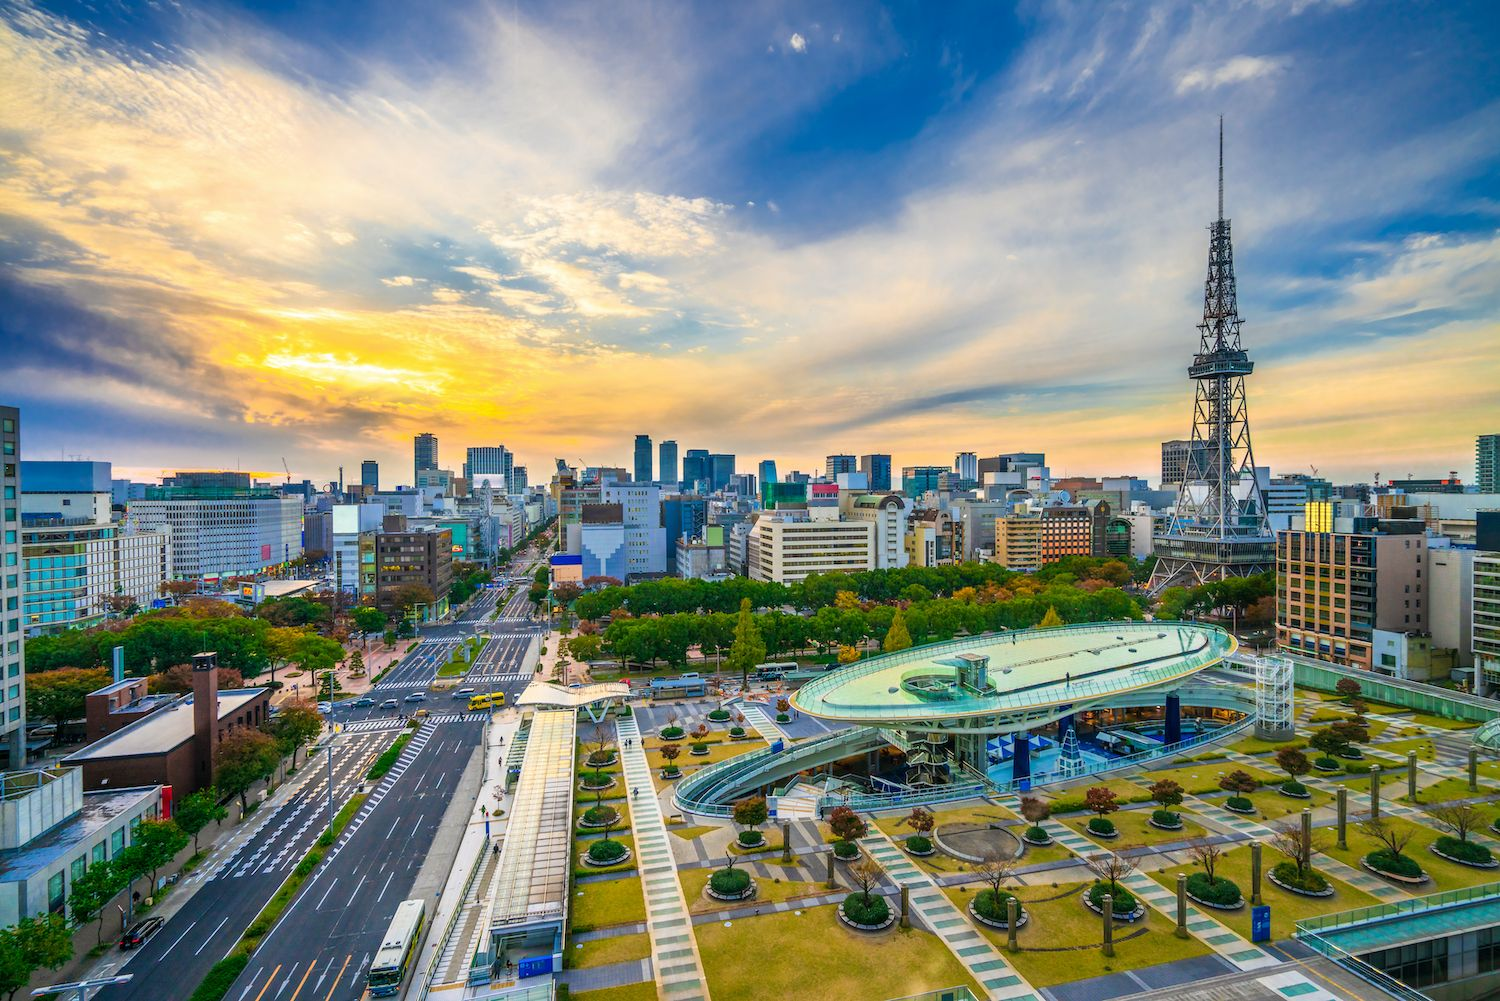 Where to stay in Nagoya, Japan